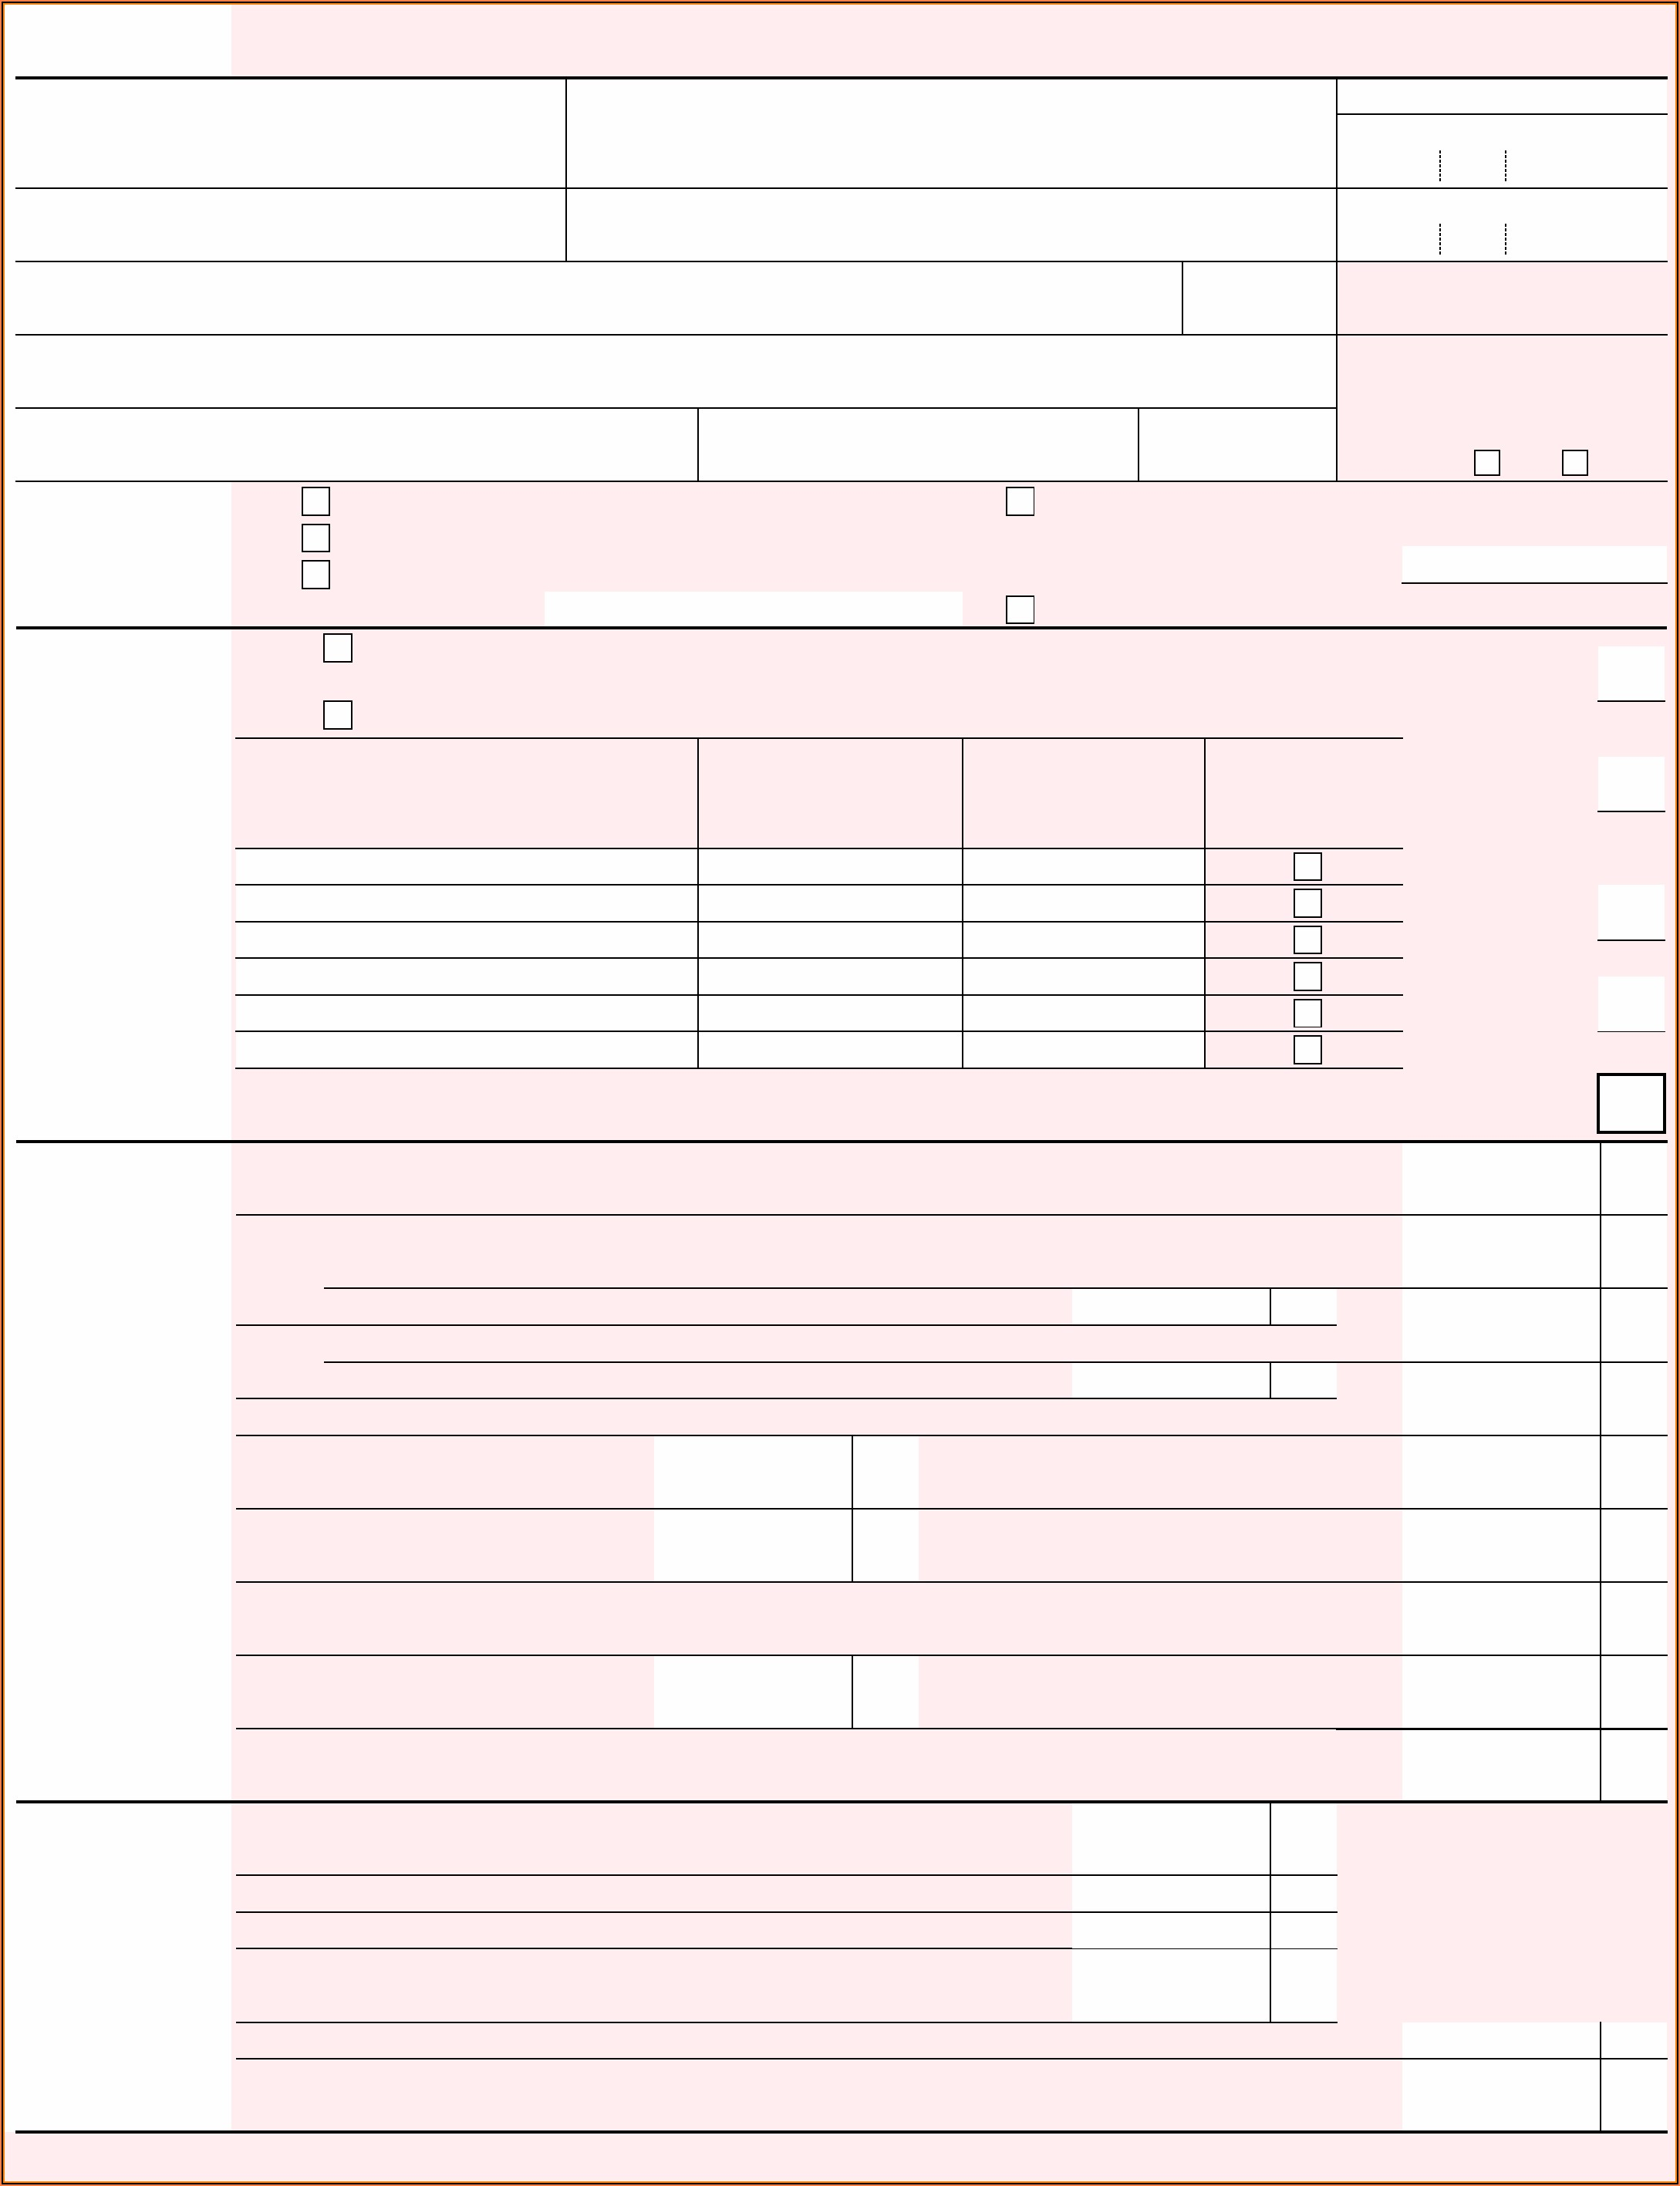 Irs Form 1040a 2012